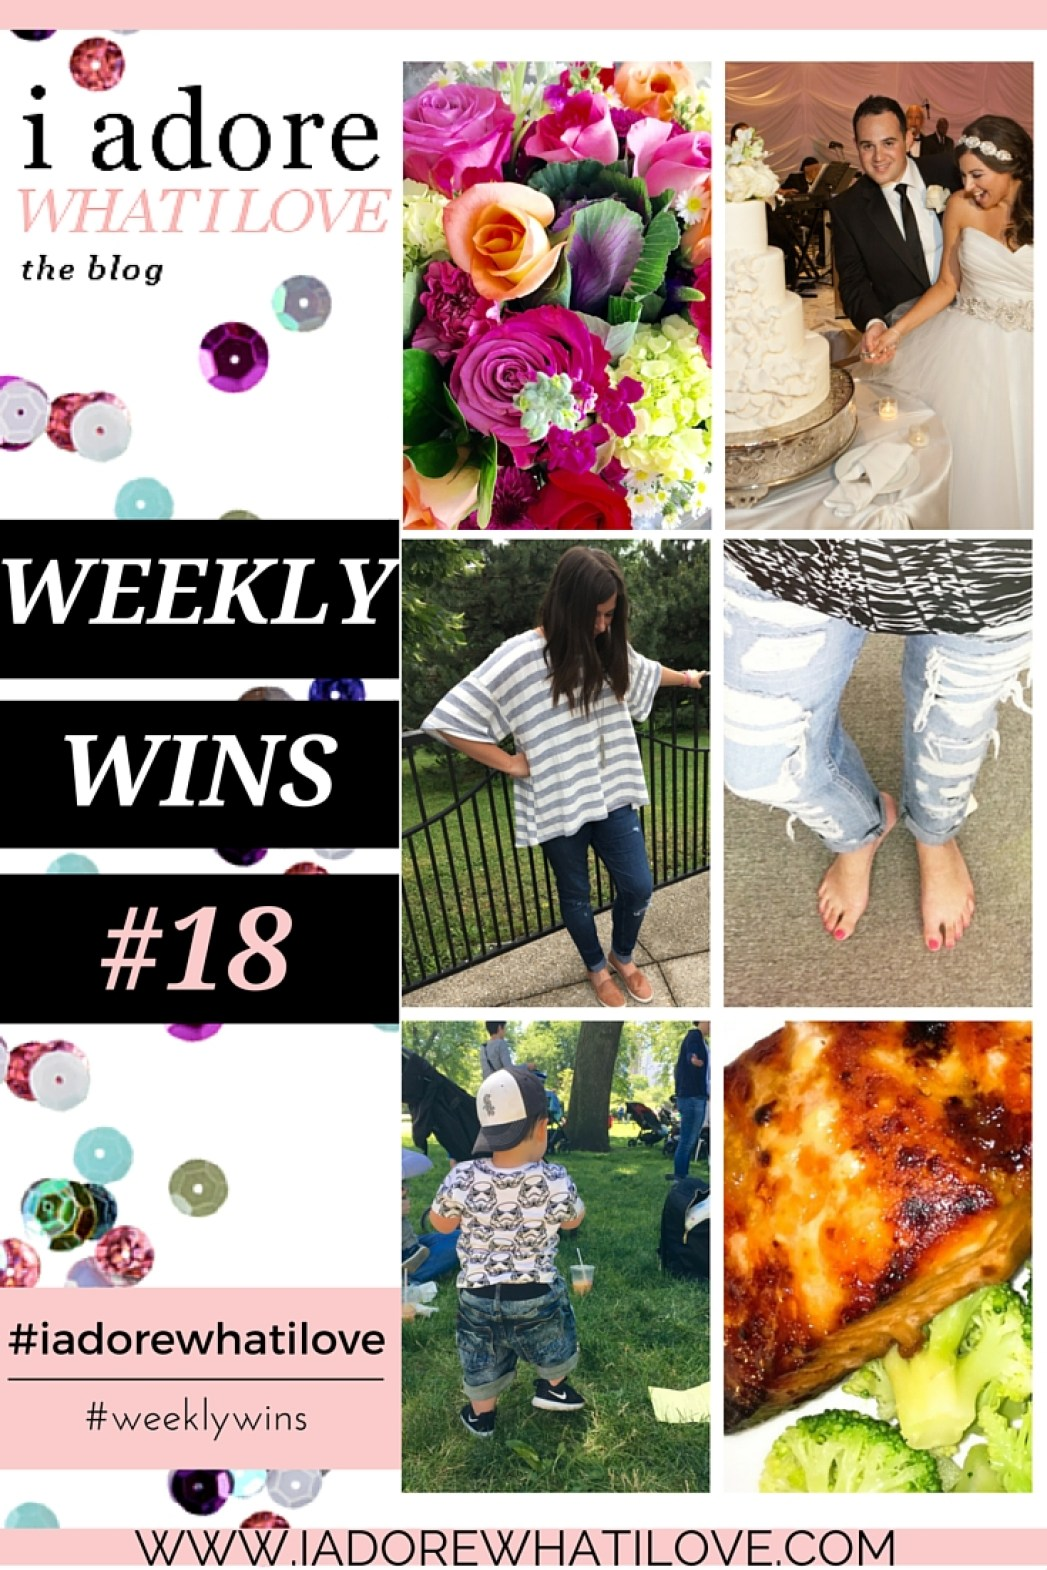 I Adore What I Love Blog // WEEKLY WINS #18 // www.iadorewhatilove.com #iadorewhatilove